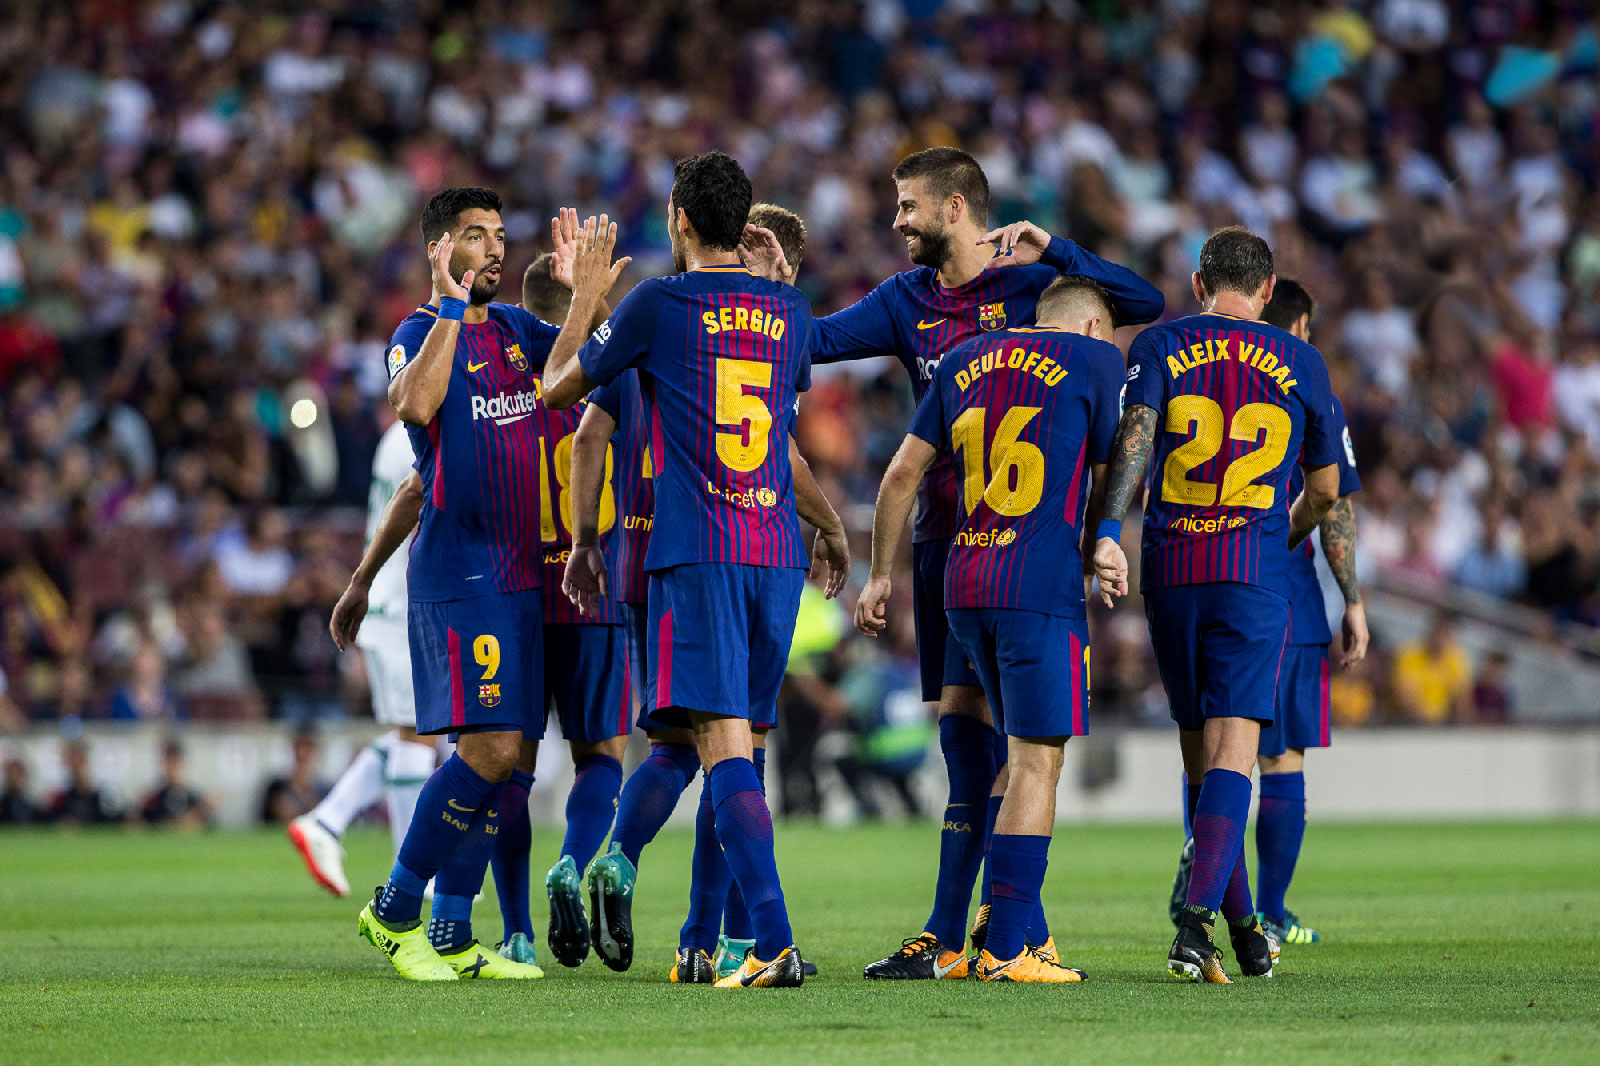 Barcelona's LaLiga title hope dashed